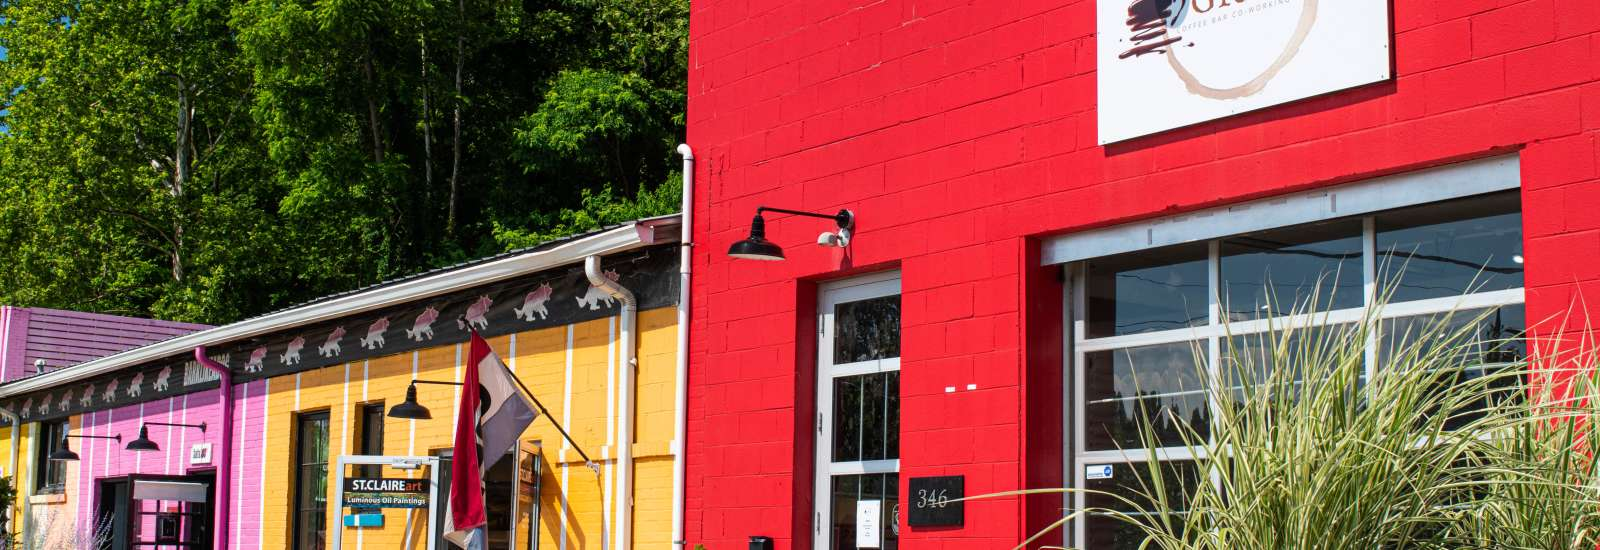 Grind AVL in Asheville's River Arts District is the city's first Black-owned coffee shop